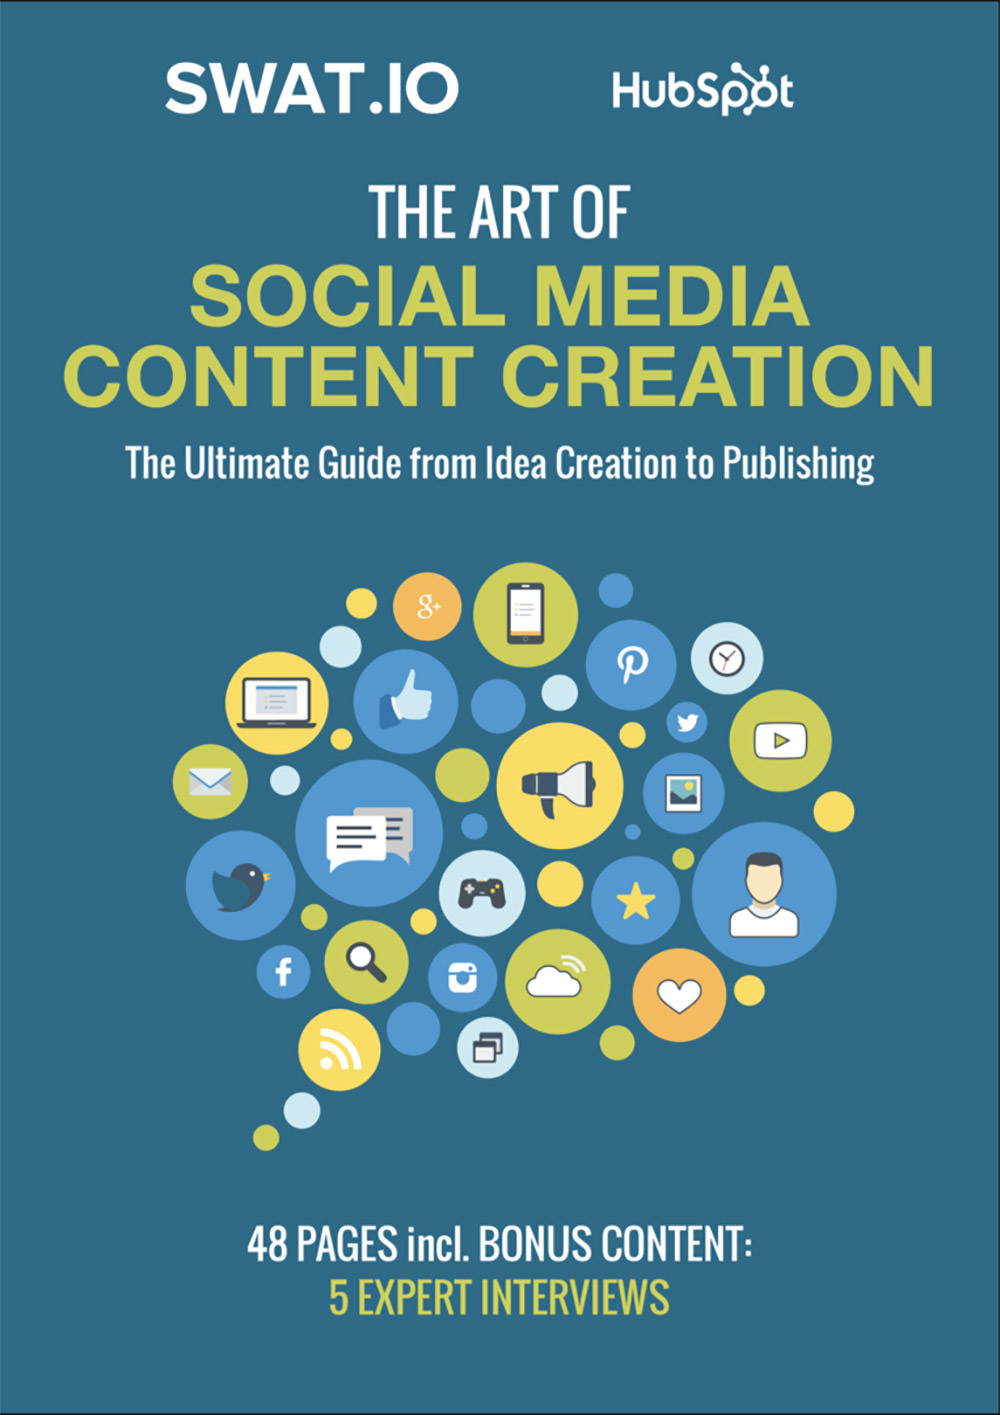 The-Art-of-Social-Media-Content-Creation